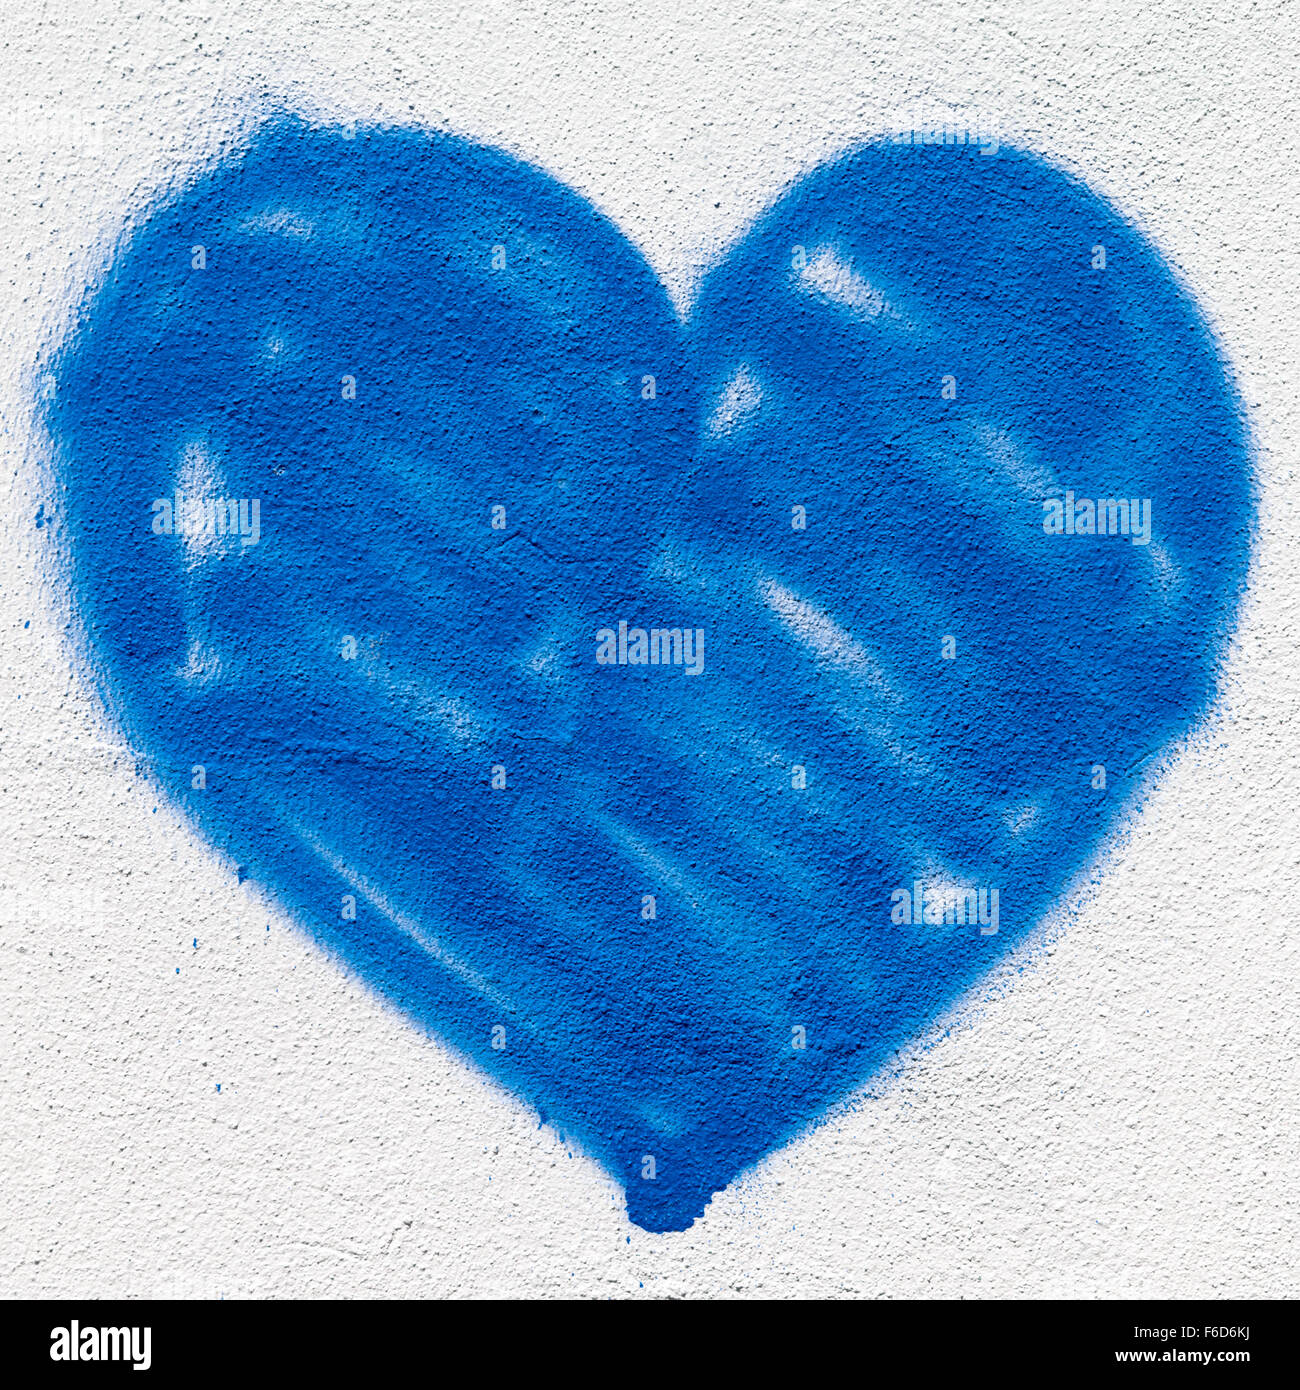 a big blue heart painted on the wall with spray paint